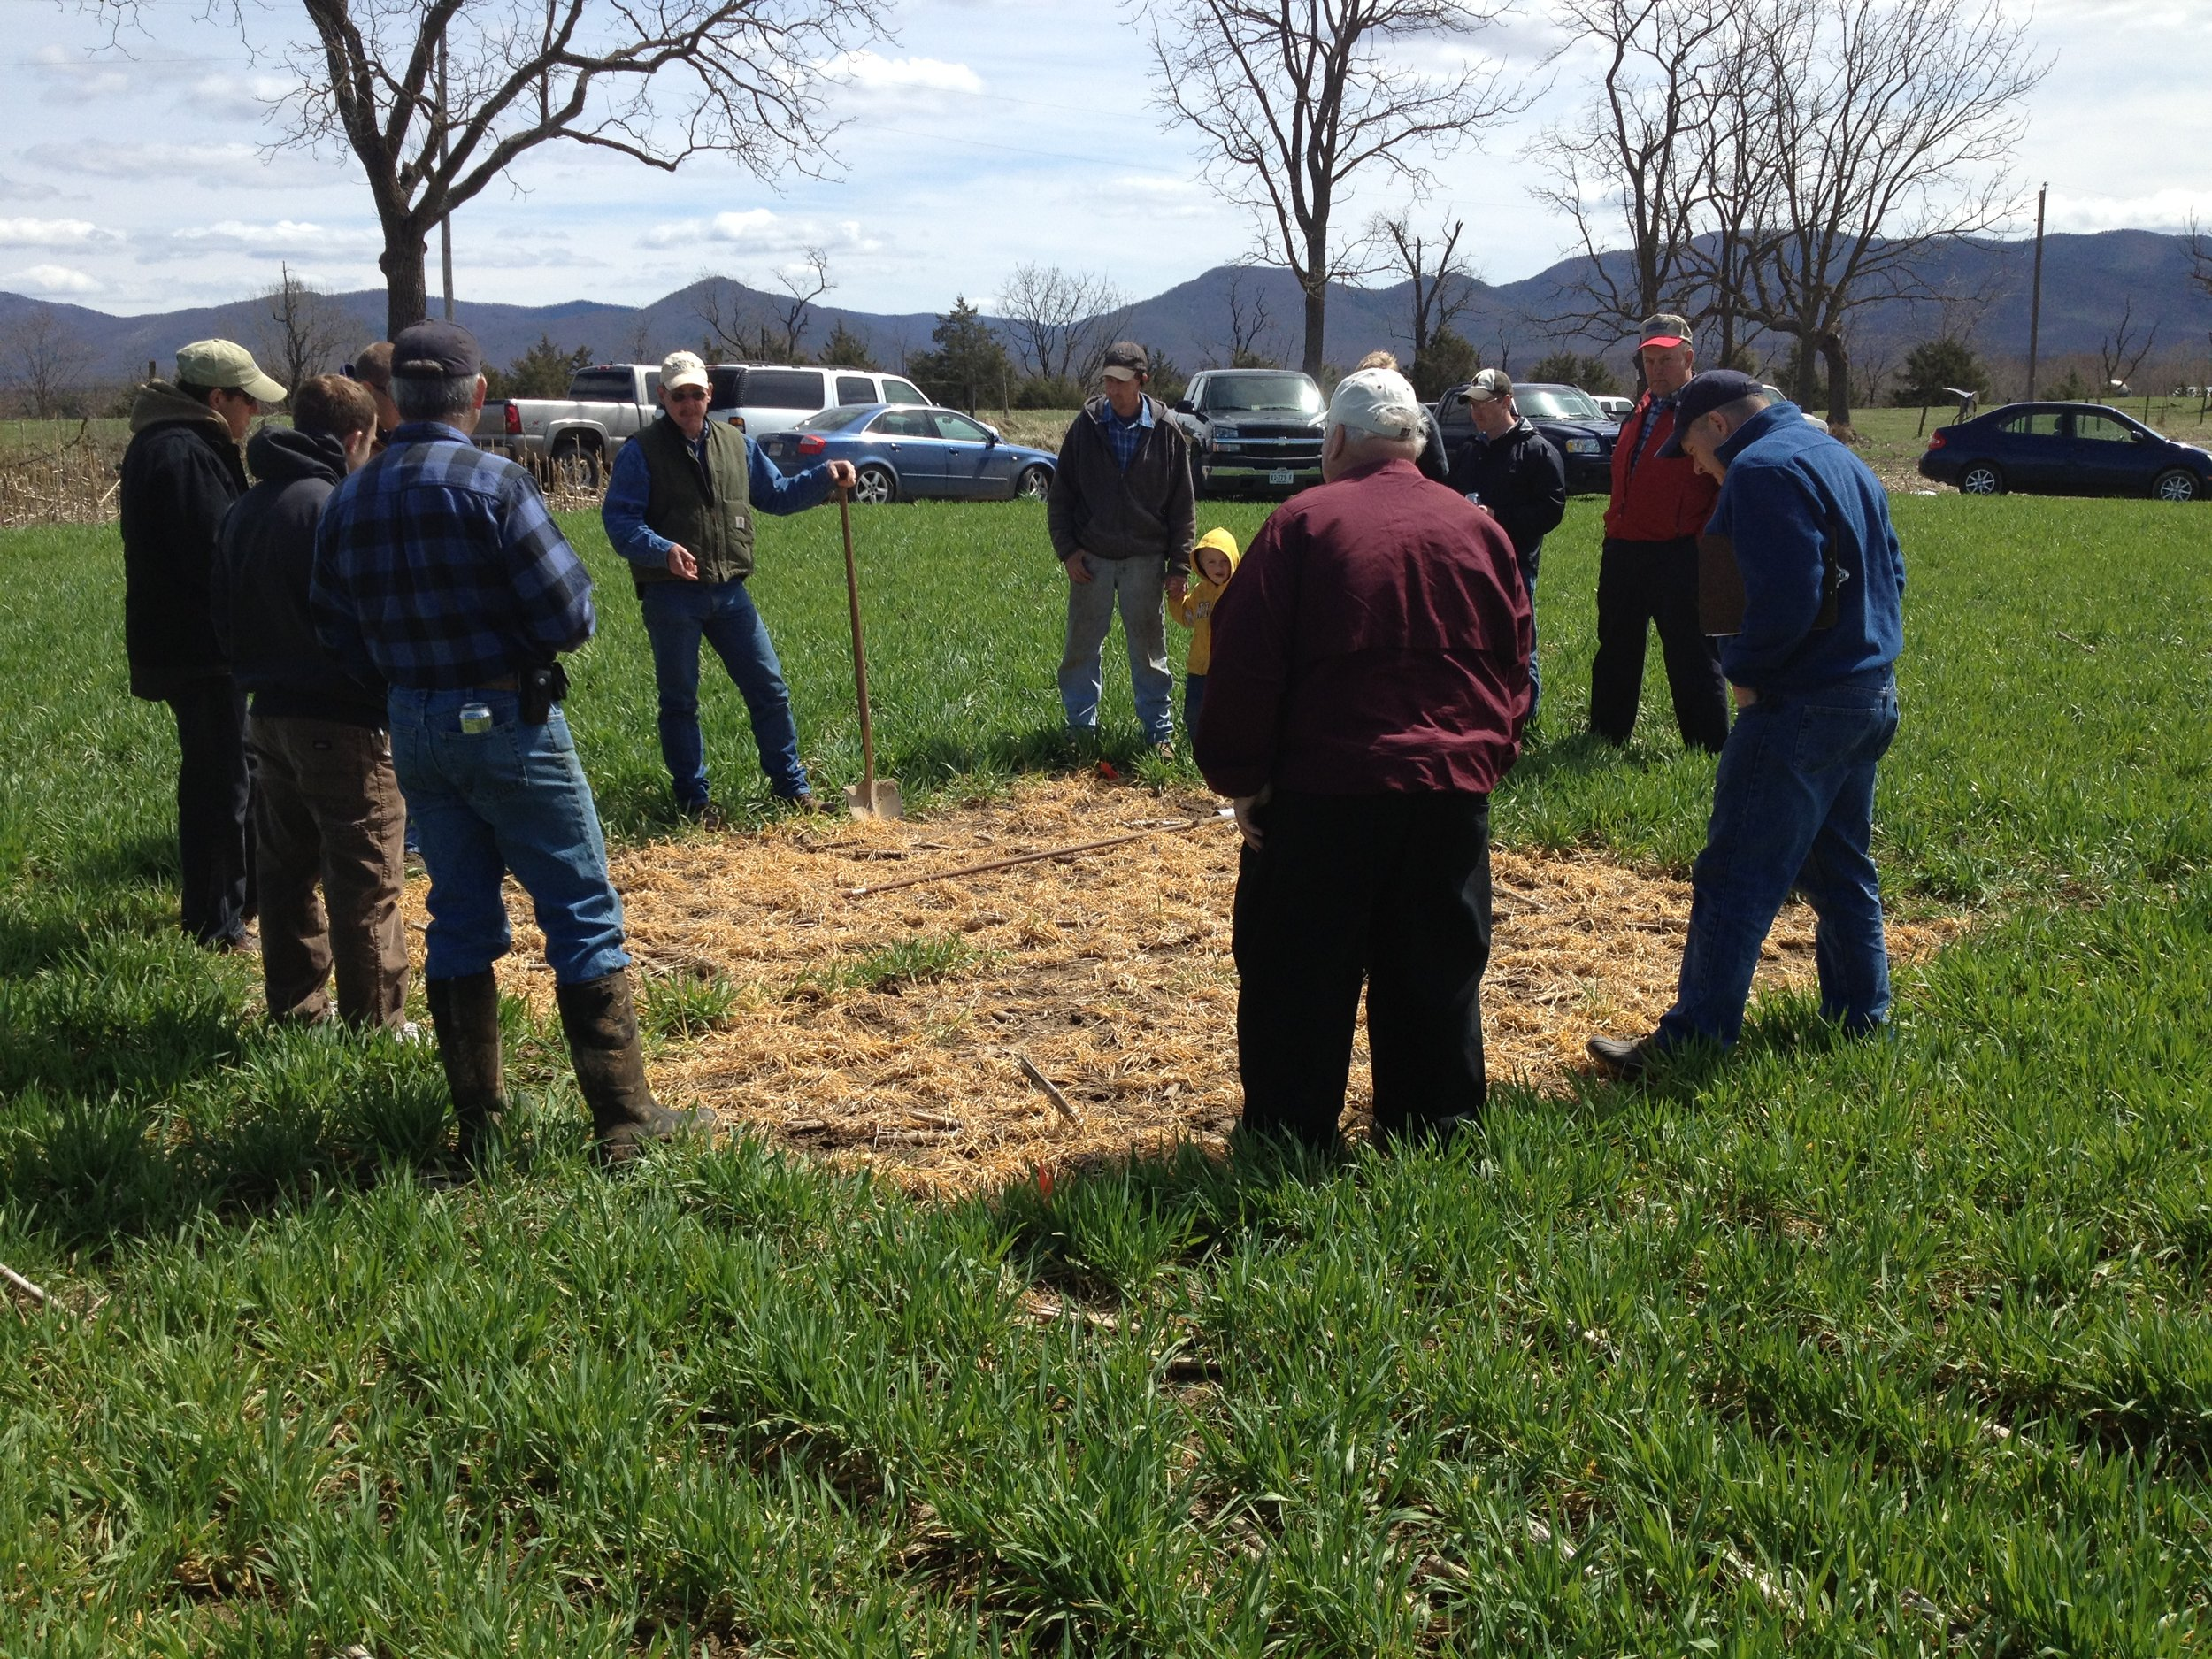 QUANTIFYING SOIL HEALTH: MEASURING THE IMPACTS OF TILLAGE & COVER CROP PRACTICES ON NUTRIENT RETENTION, & SOIL PHYSICAL, BIOLOGICAL, & CHEMICAL PROPERTIES